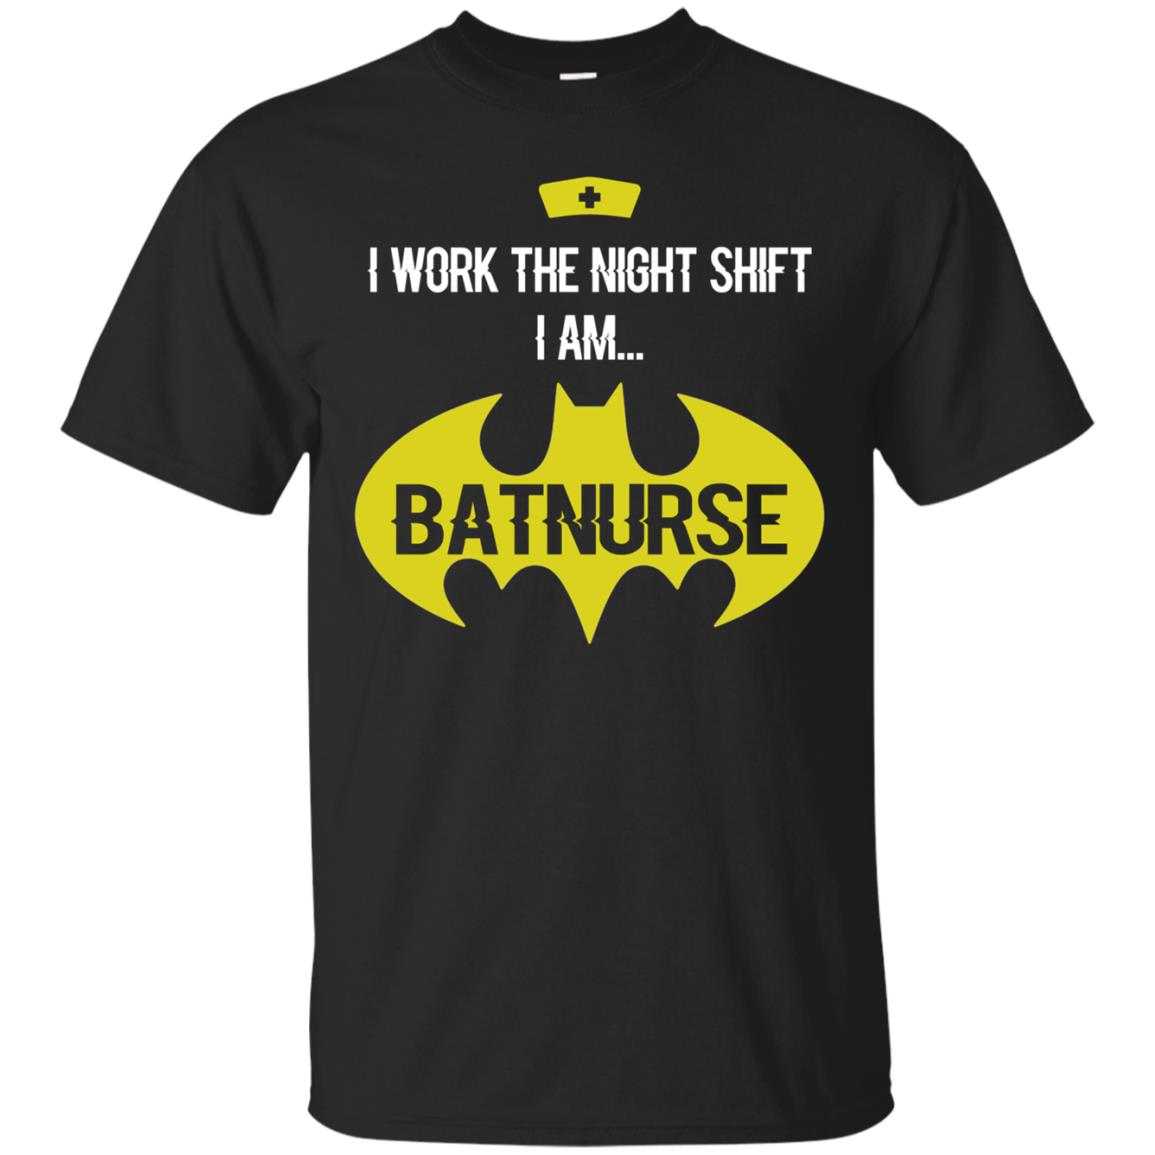 Adult Nurse T-Shirt Am Bat Nurse I Work The Night Shift Shirt